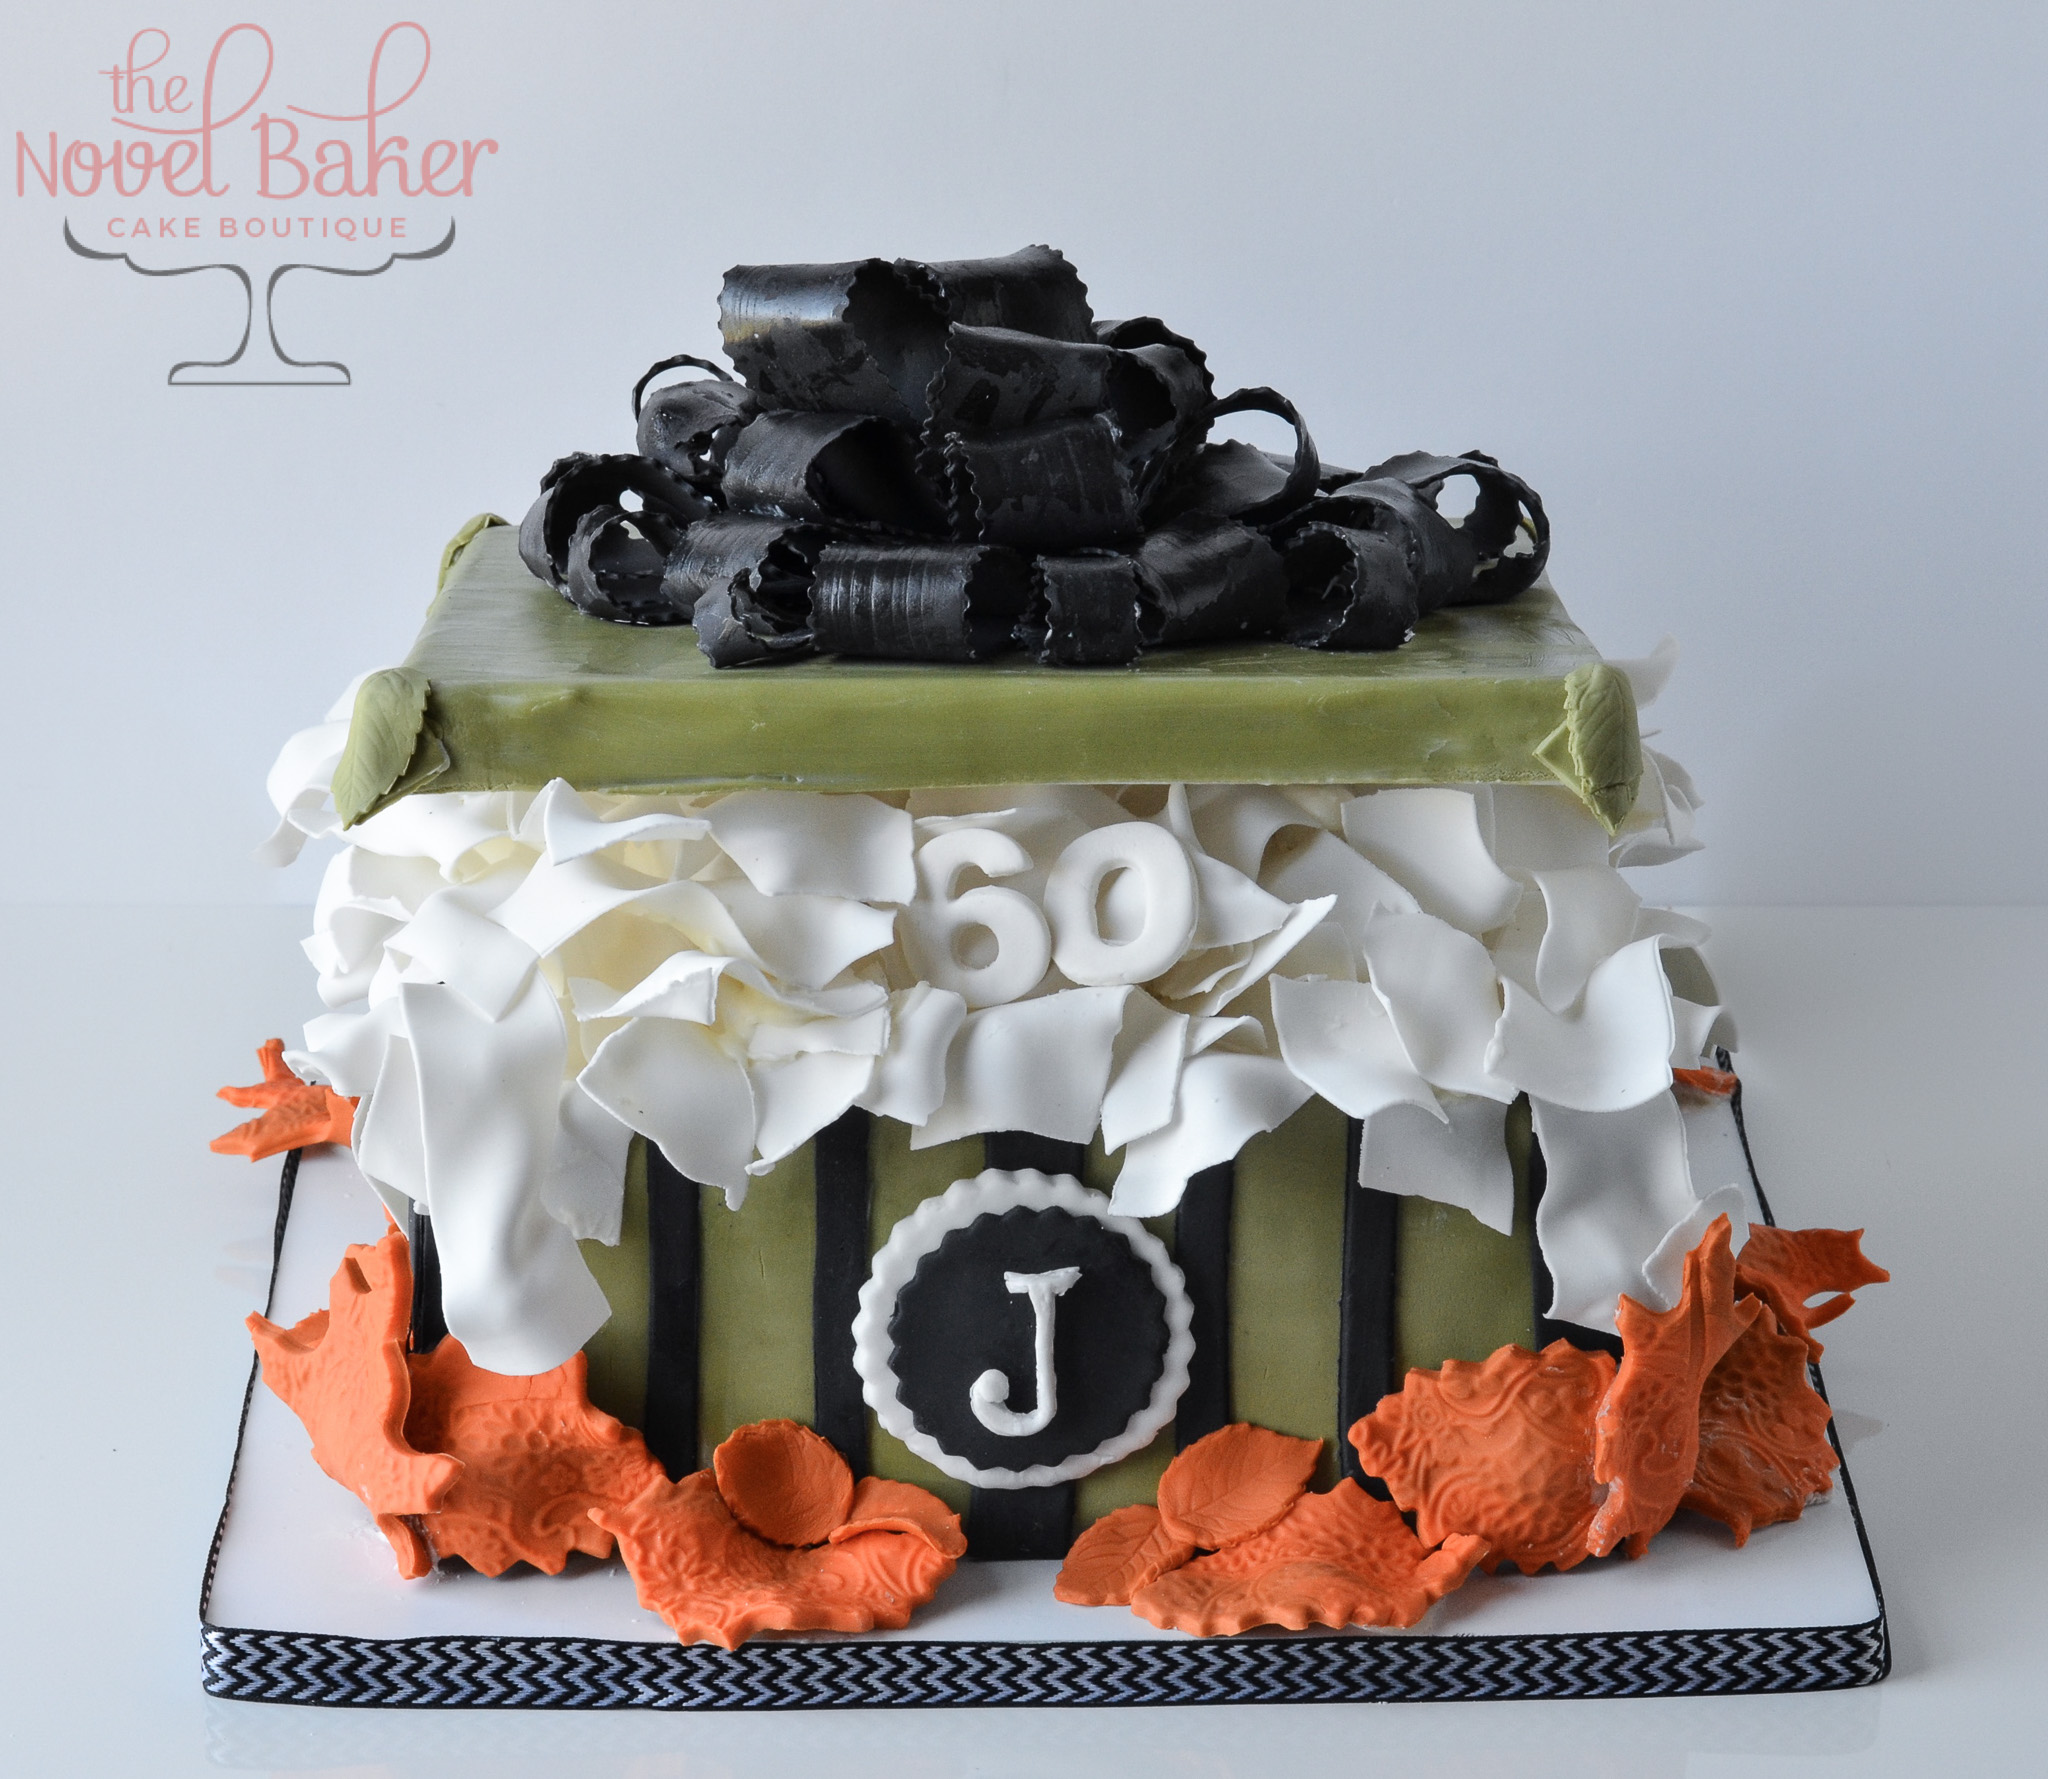 Fall Colors of Olive, Black and Orange embrace this Gift Box Cake